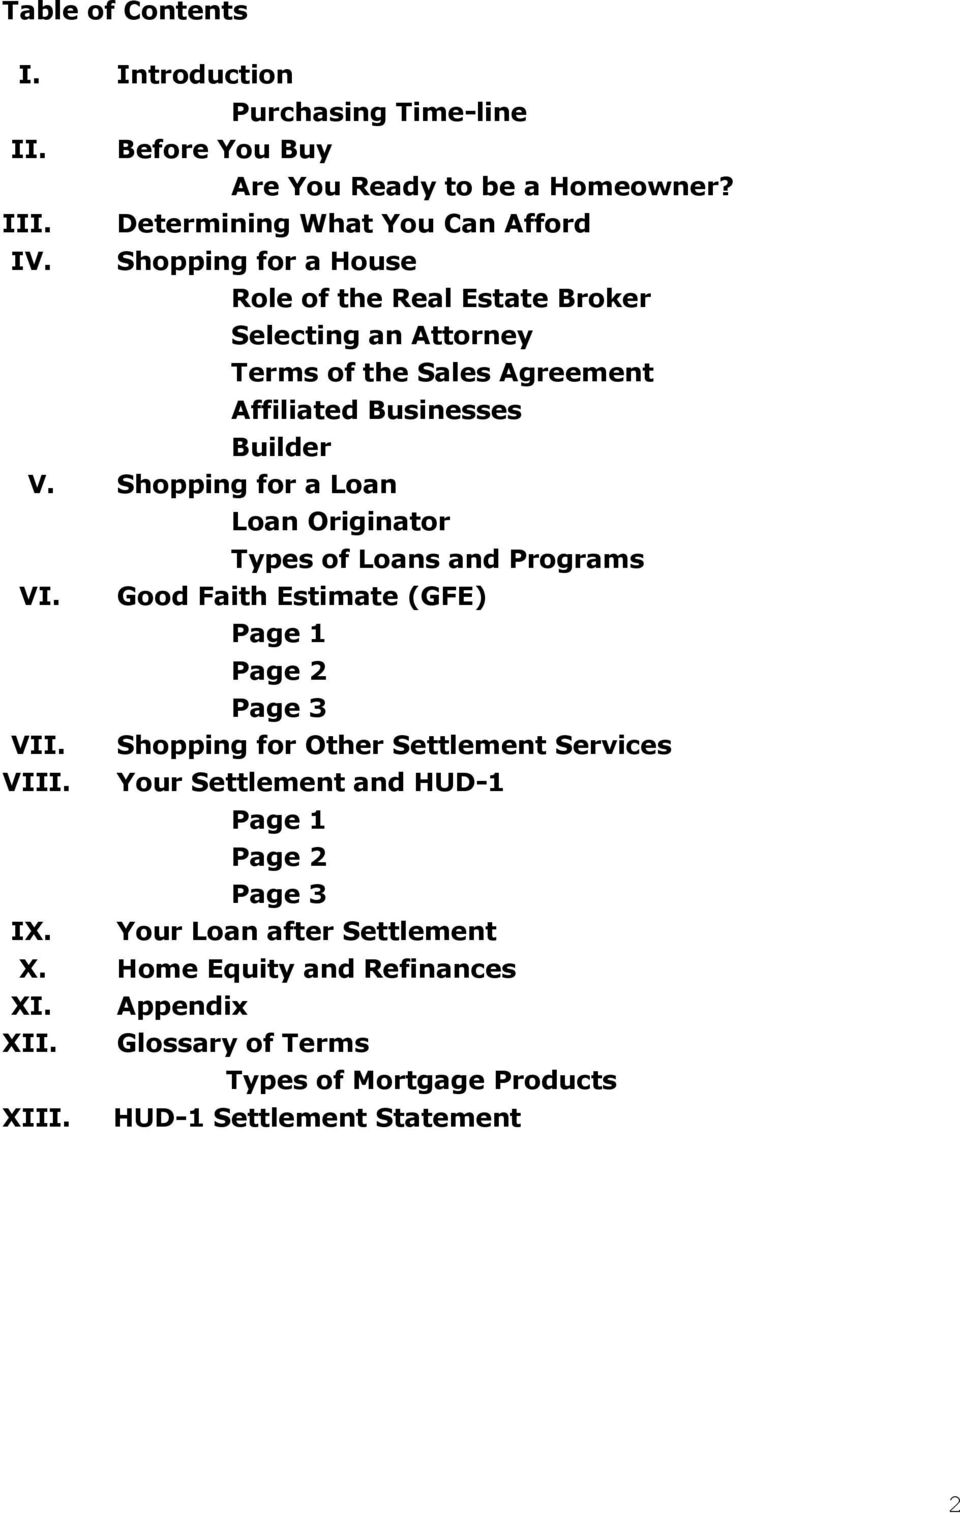 Shopping for a Loan Loan Originator Types of Loans and Programs VI. Good Faith Estimate (GFE) Page 1 Page 2 Page 3 VII. Shopping for Other Settlement Services VIII.